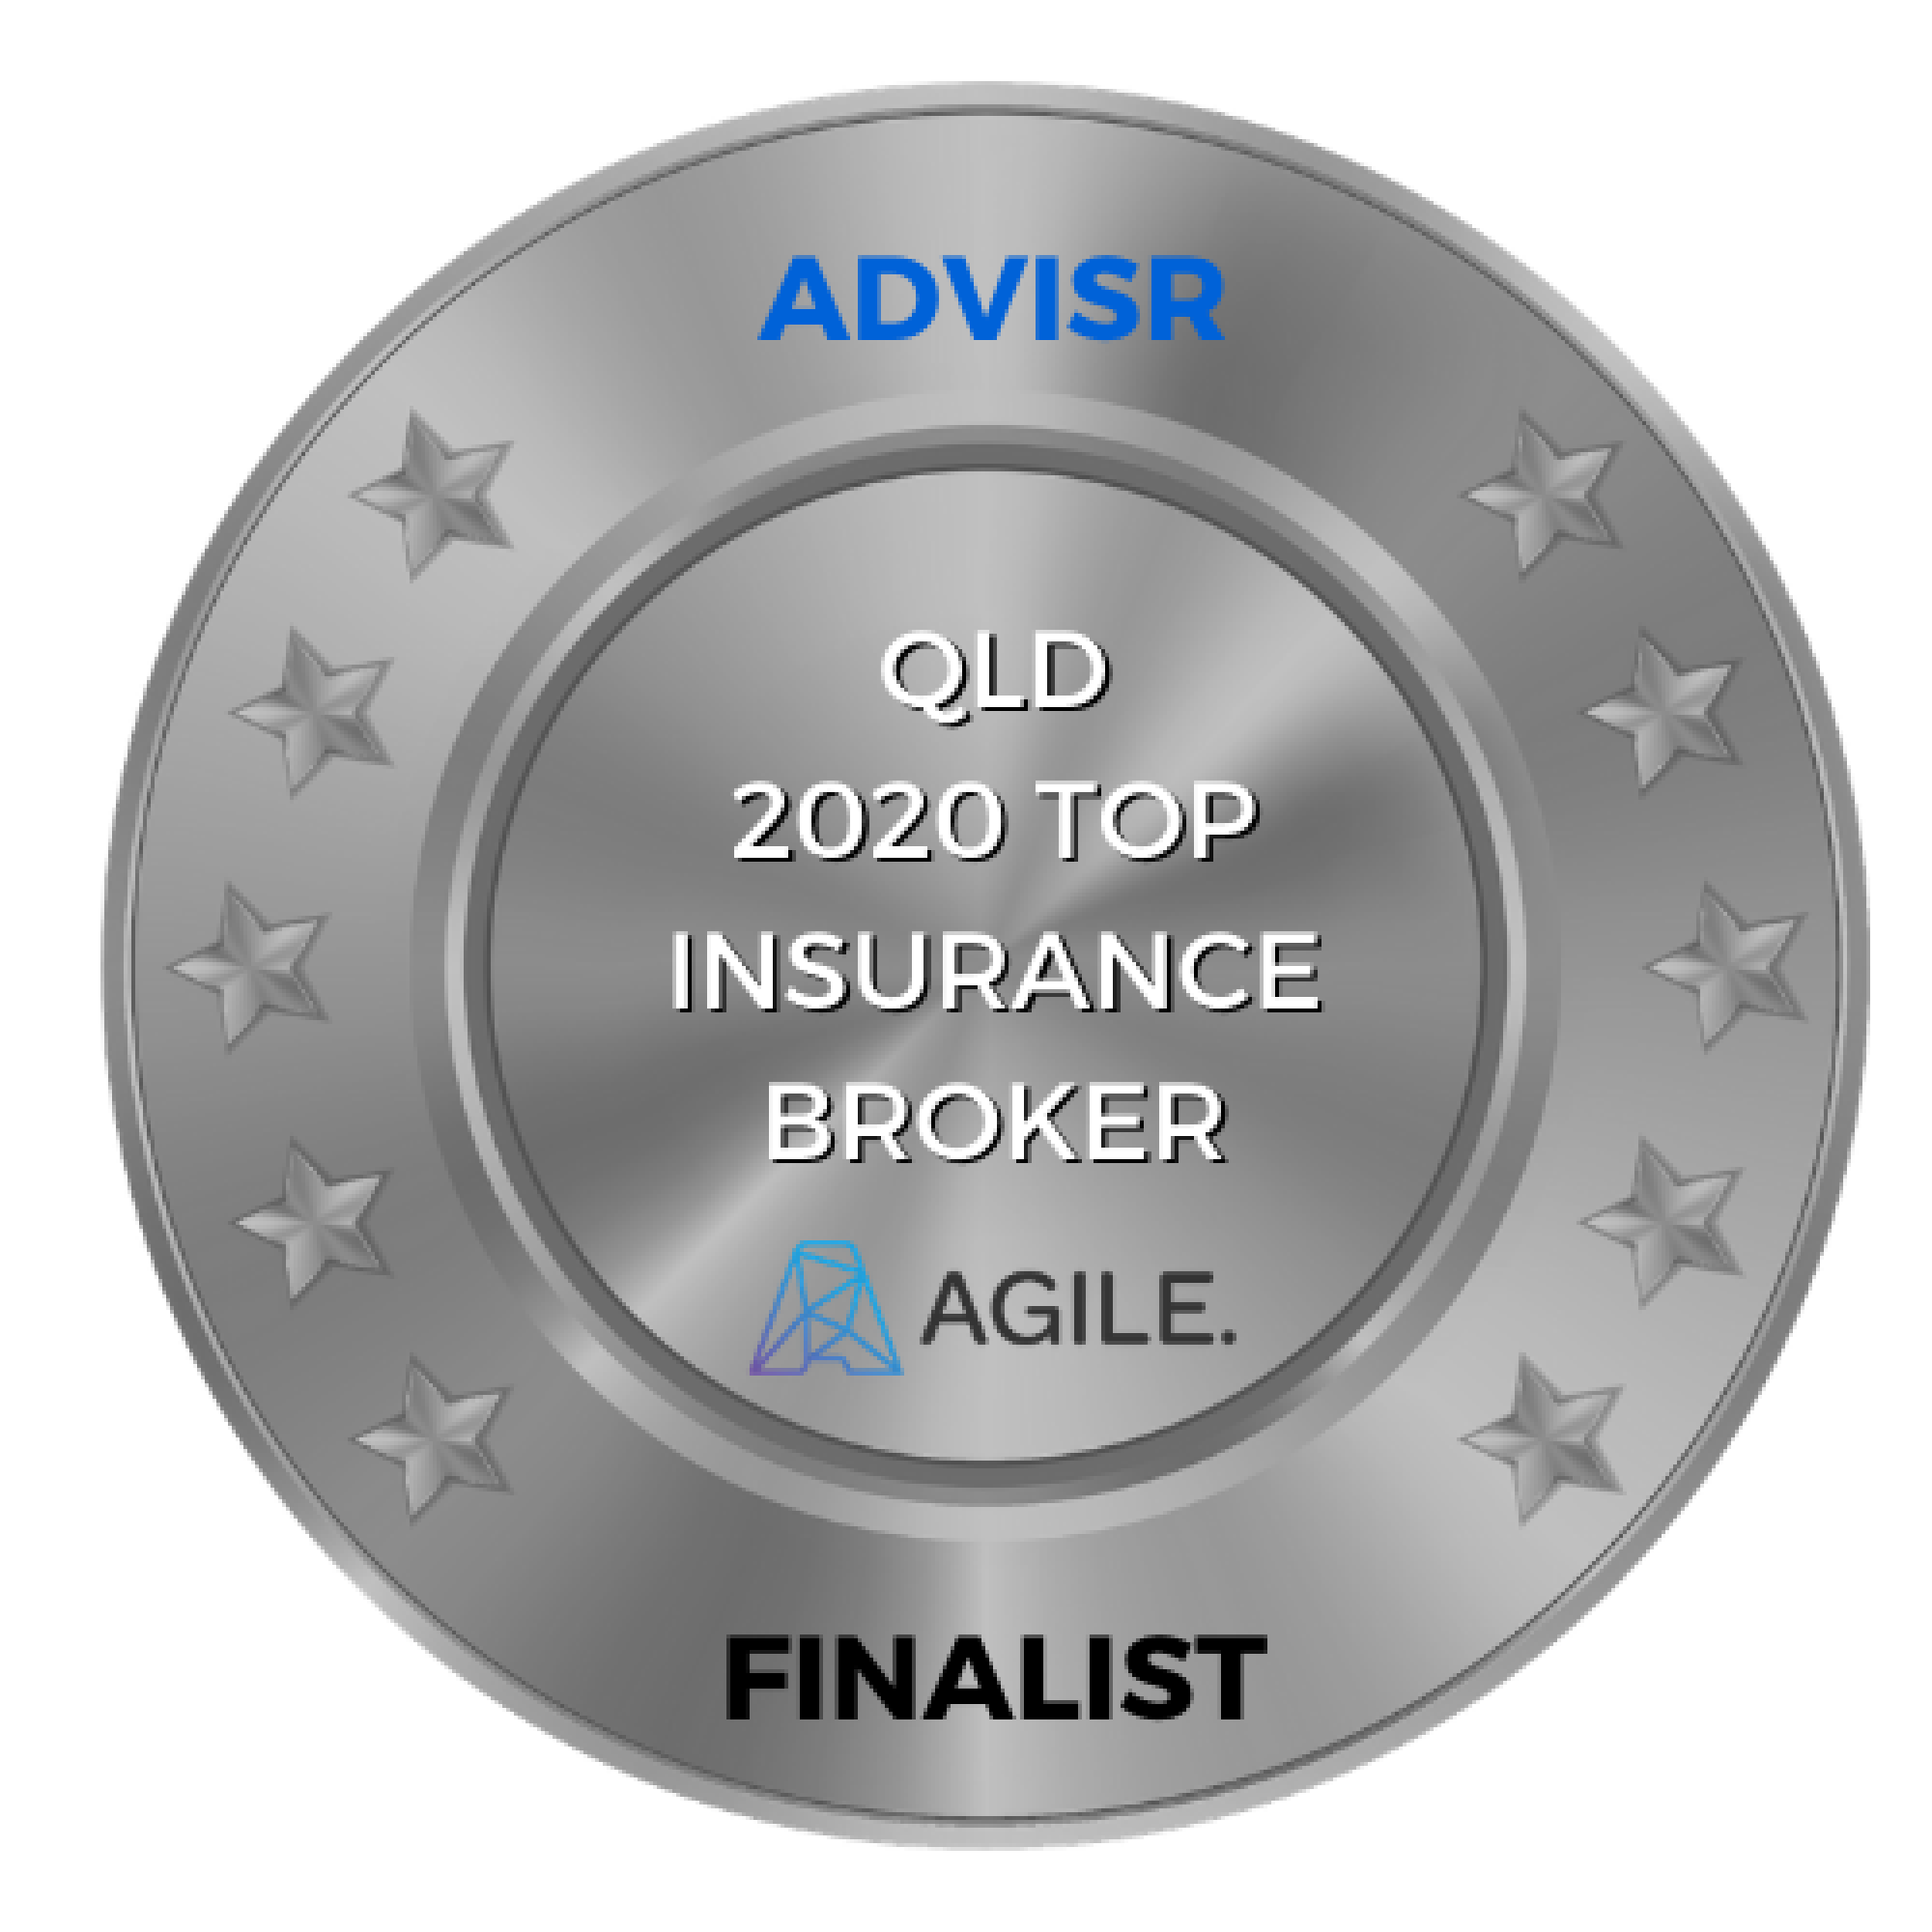 Advisr Insurance Broker Awards 2020 Finalist | Queensland Top Insurance Broker